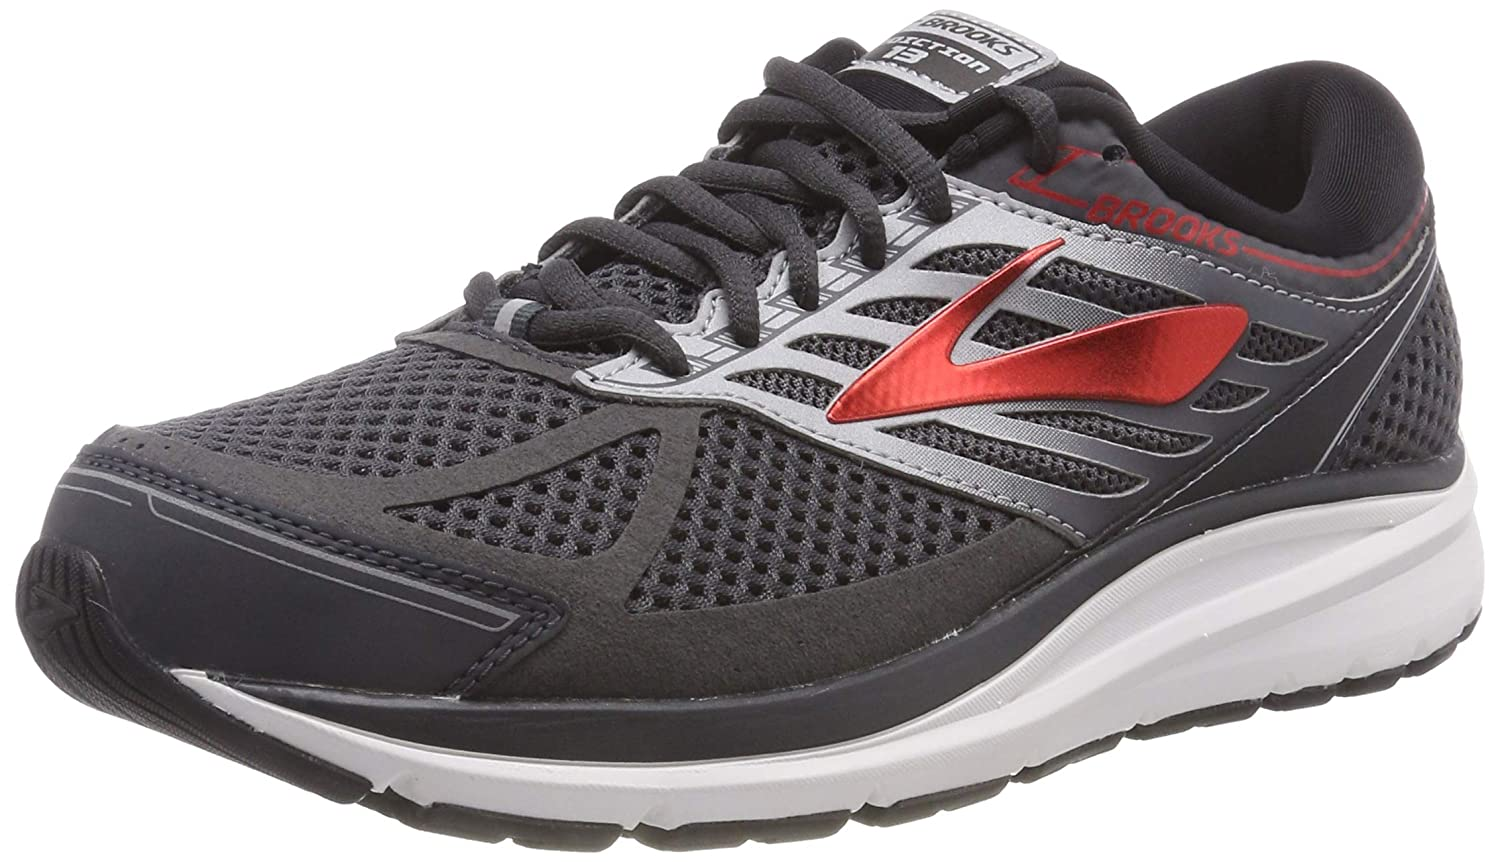 23cf796393ffb Brooks Men s s Addiction 13 Running Shoes  Amazon.co.uk  Shoes   Bags